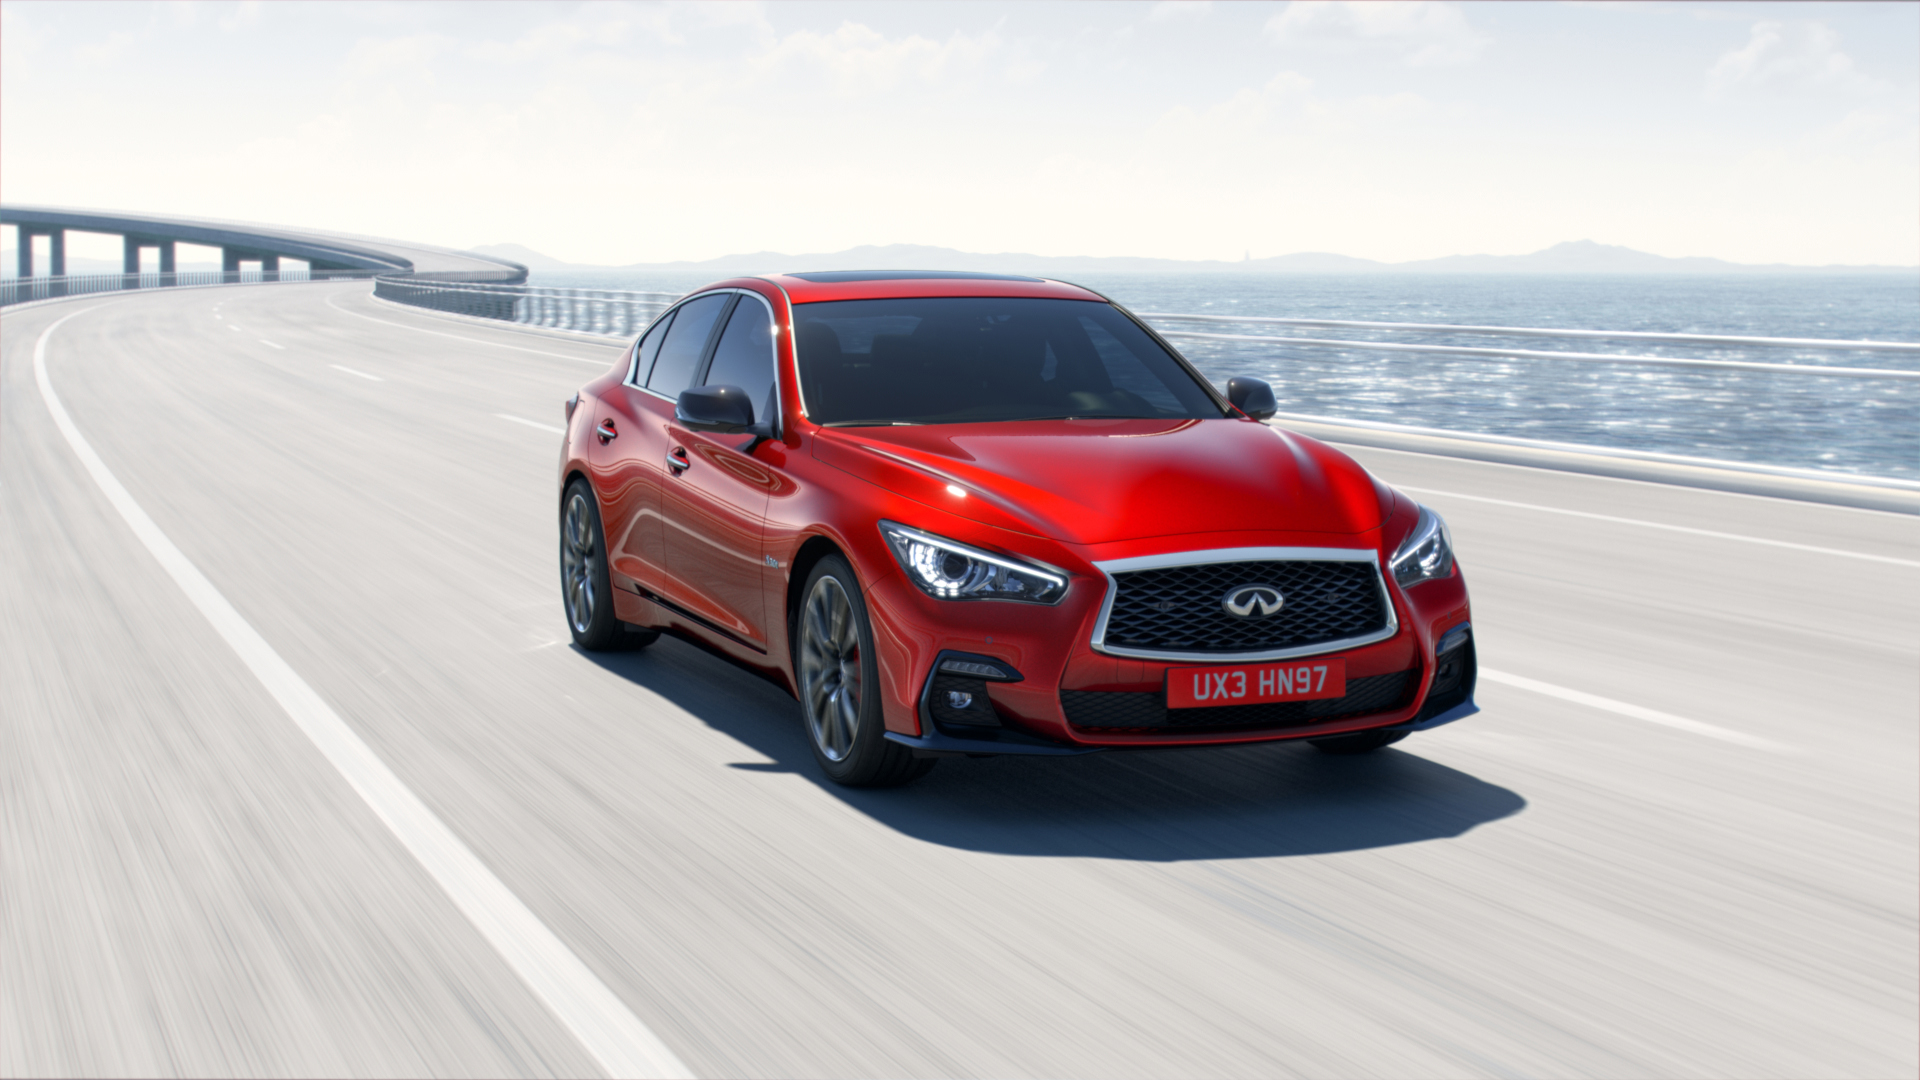 2020 INFINITI Q50 Review, Ratings, Specs, Prices, and Photos